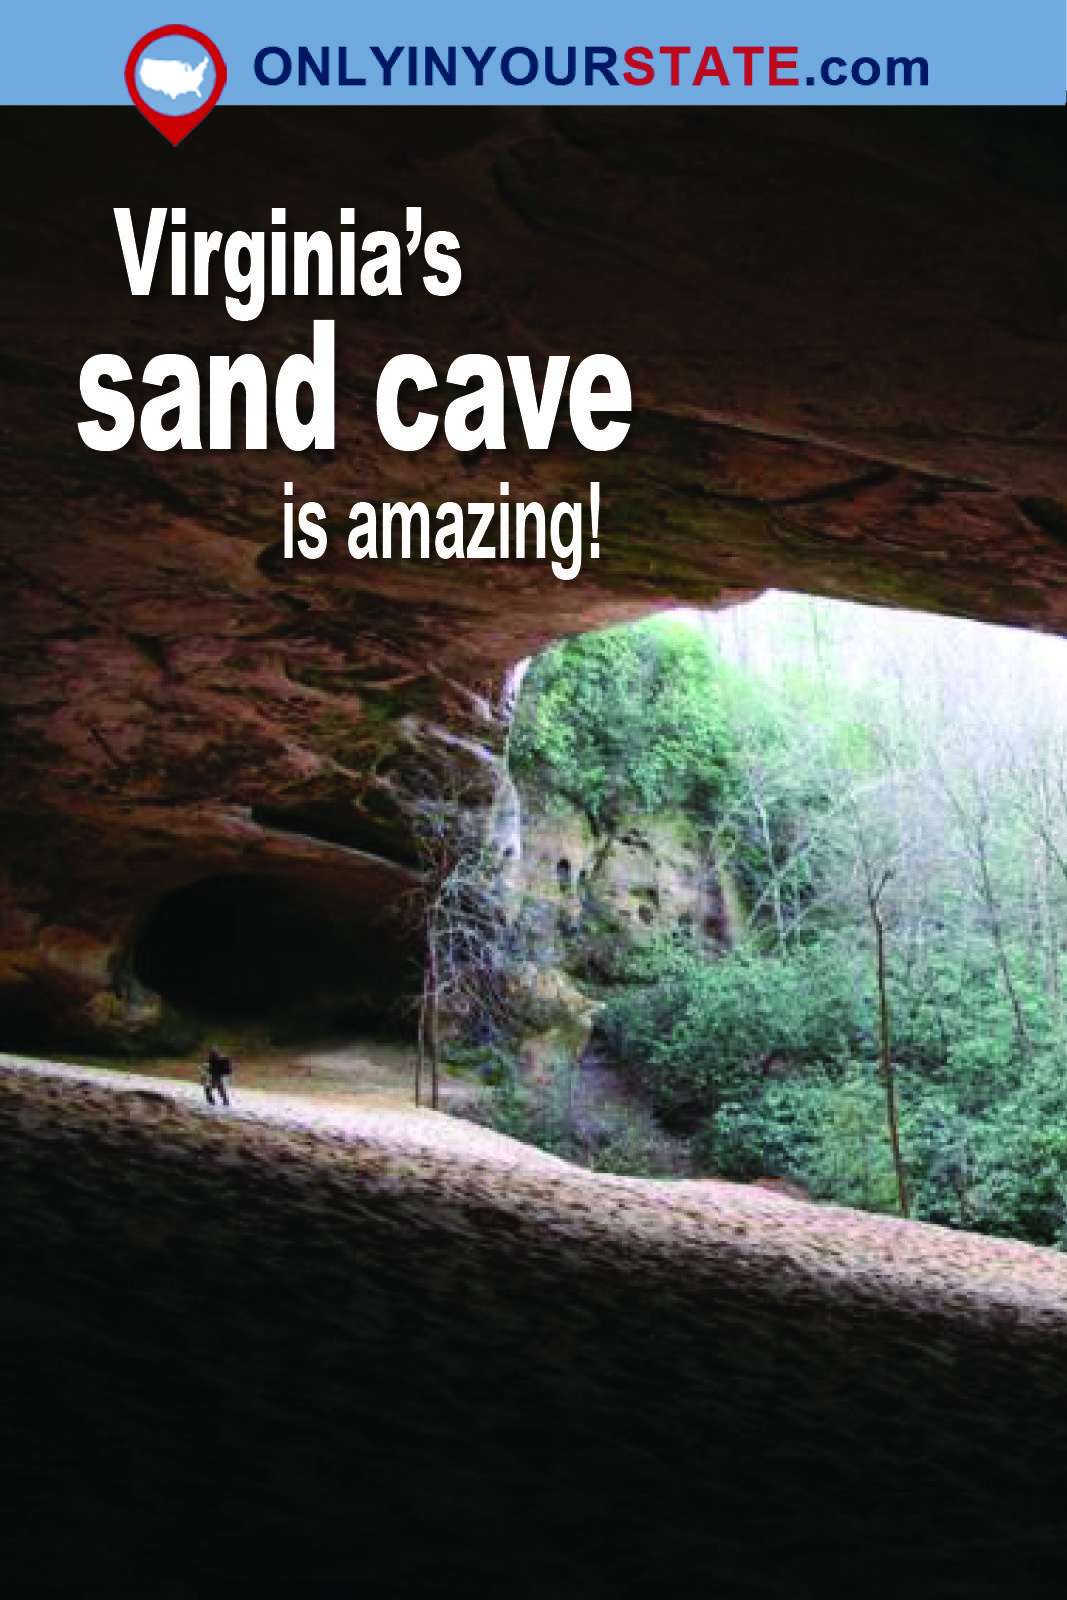 Travel Virginia Sites Attractions Activities Things To Do Sand Cave Explore Outdoor Adventure Hiking